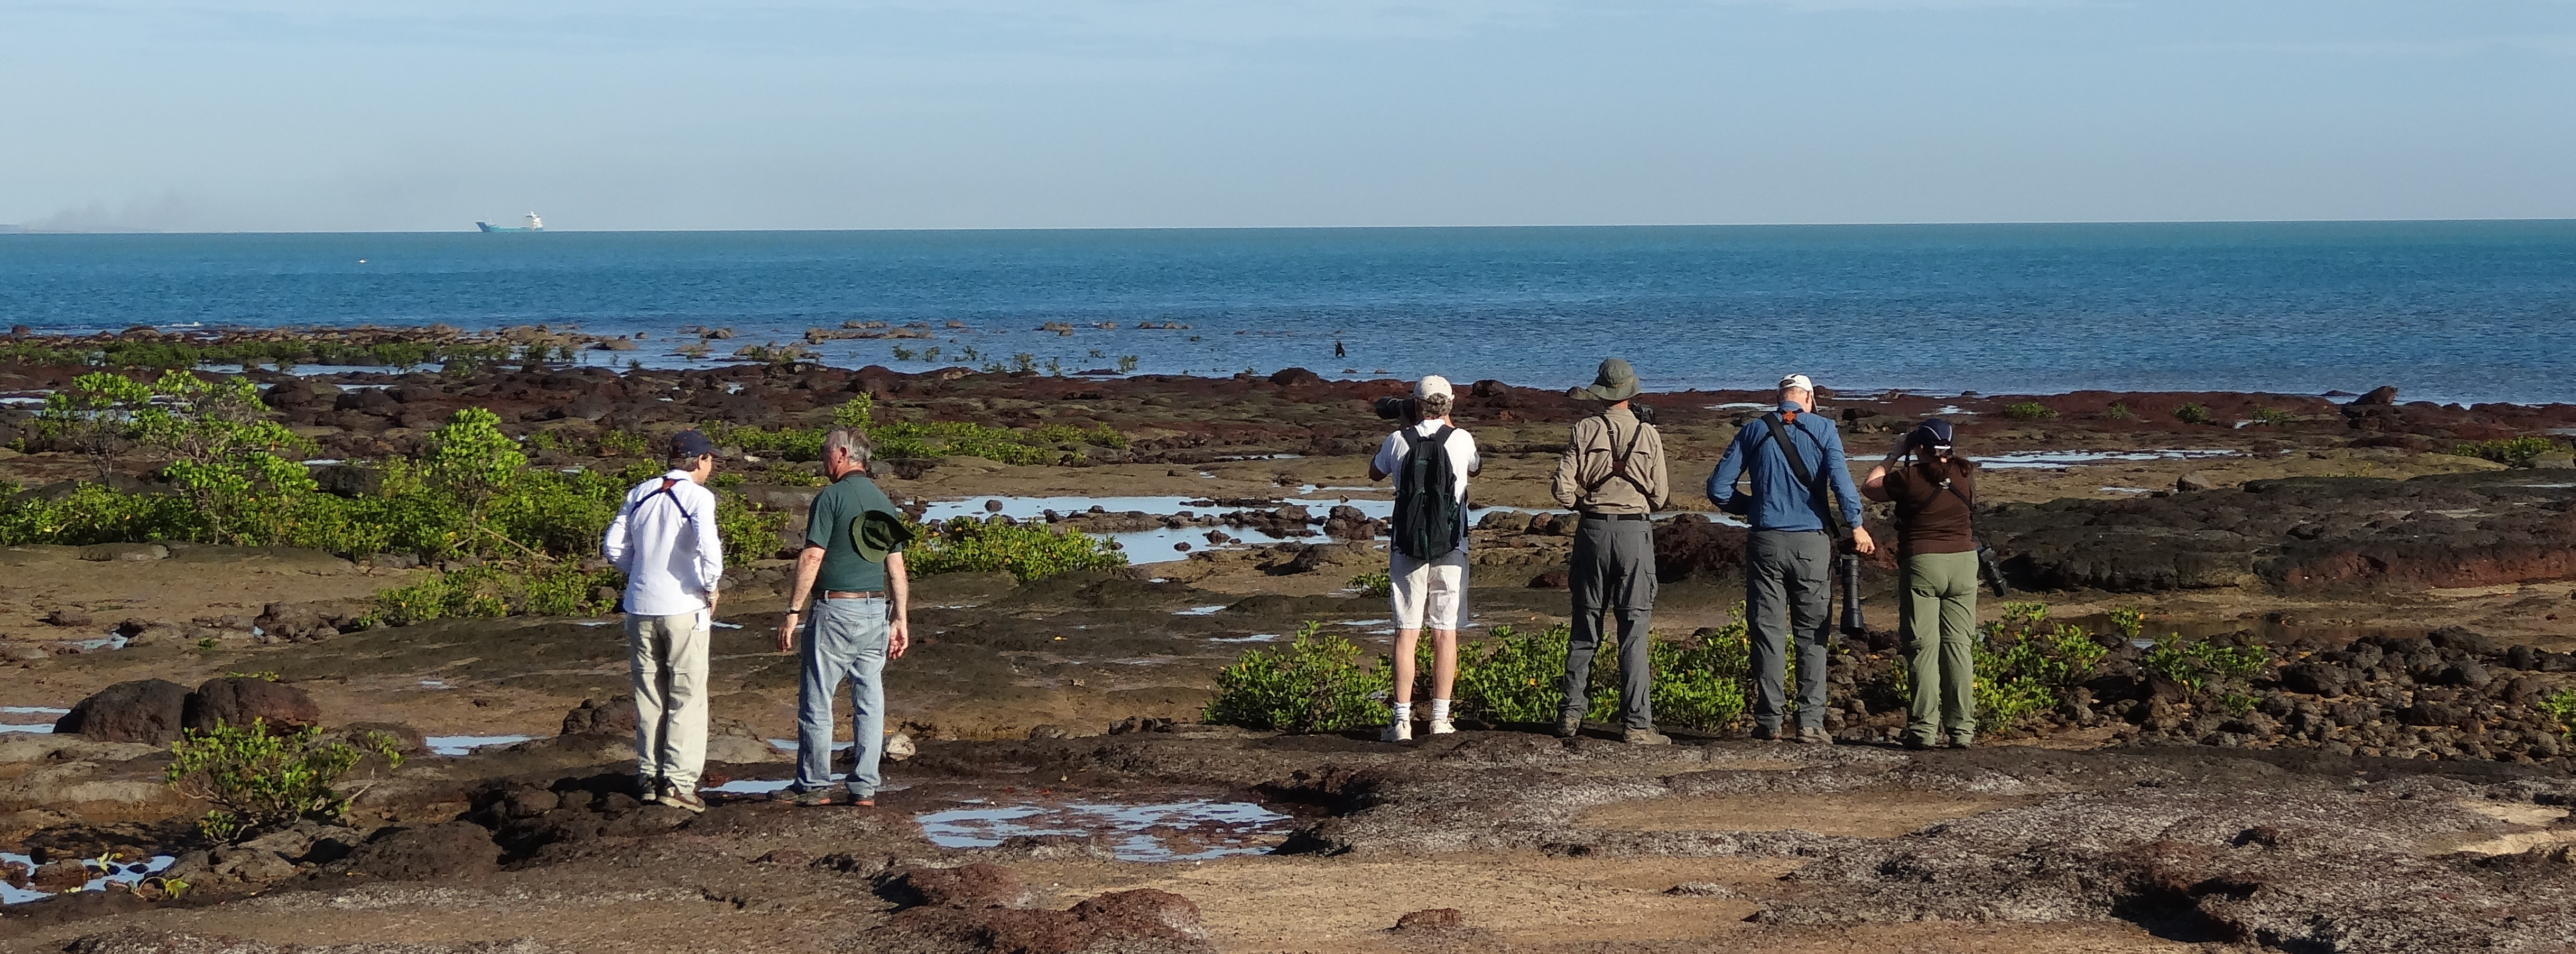 East Point rocks! Great place to see waders, only ten minutes from the centre of Darwin